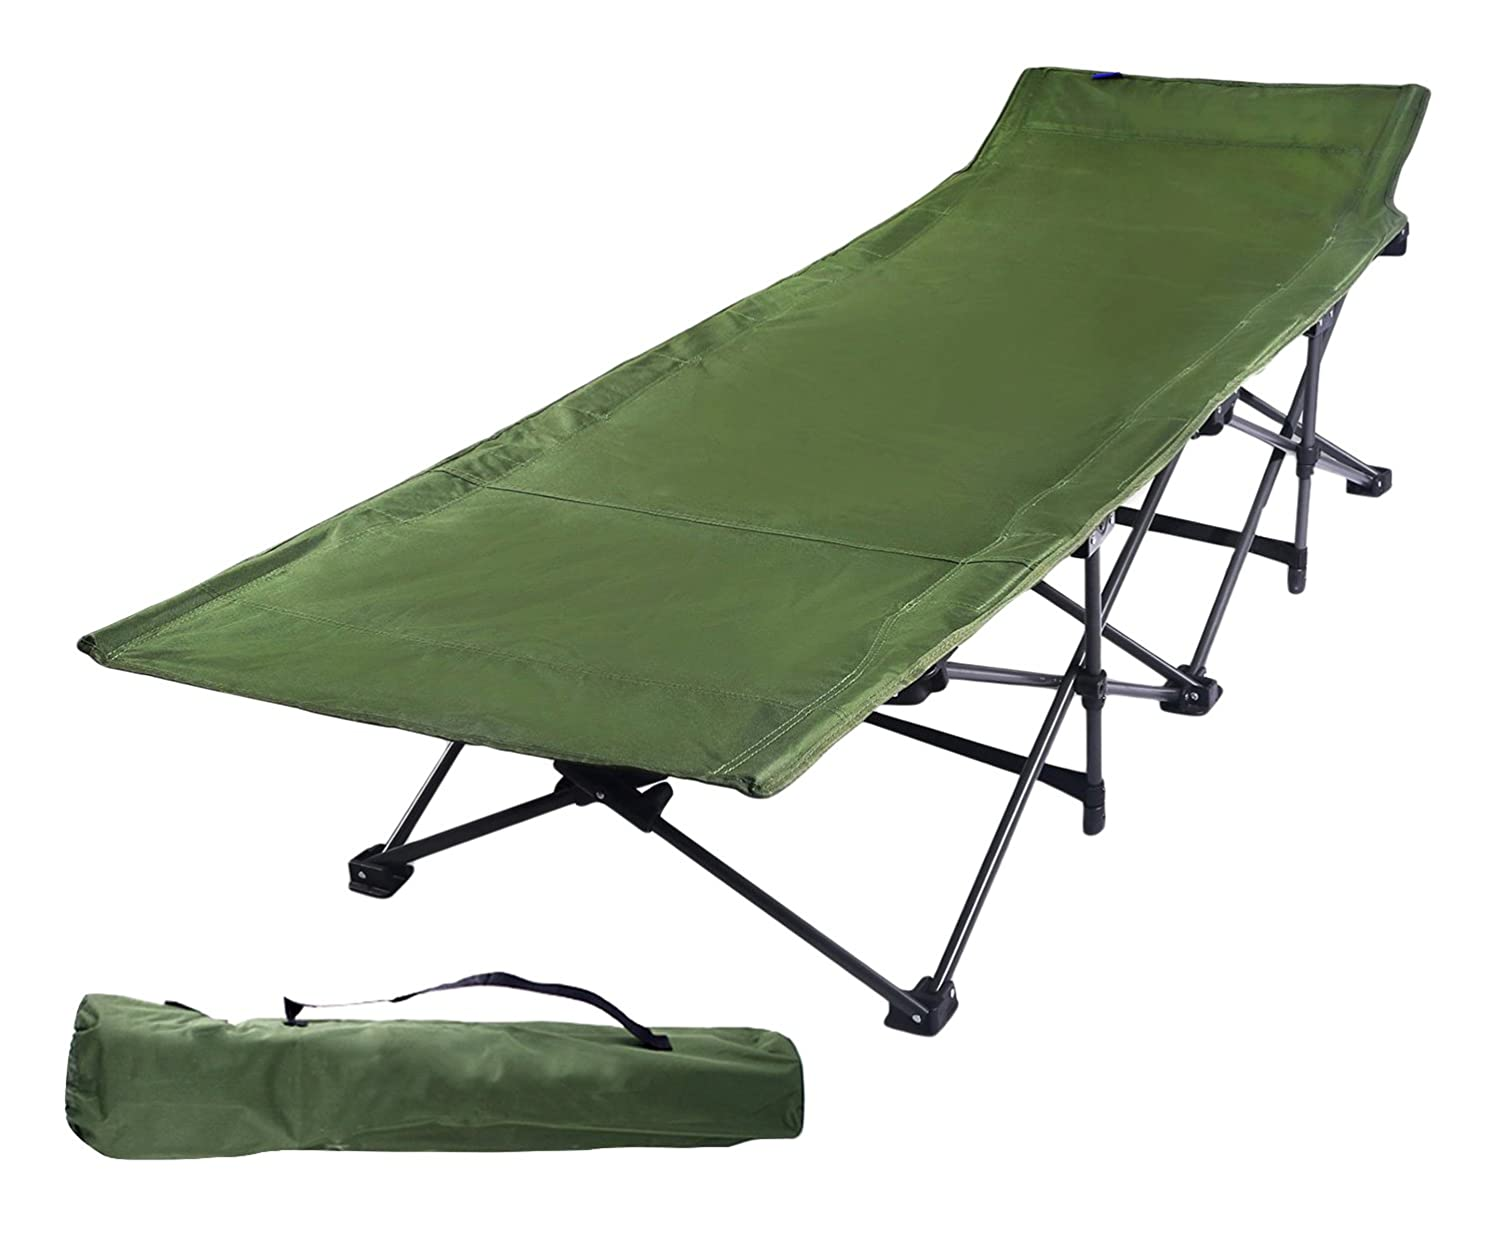 Best camping cot: REDCAMP Camping Cot Review